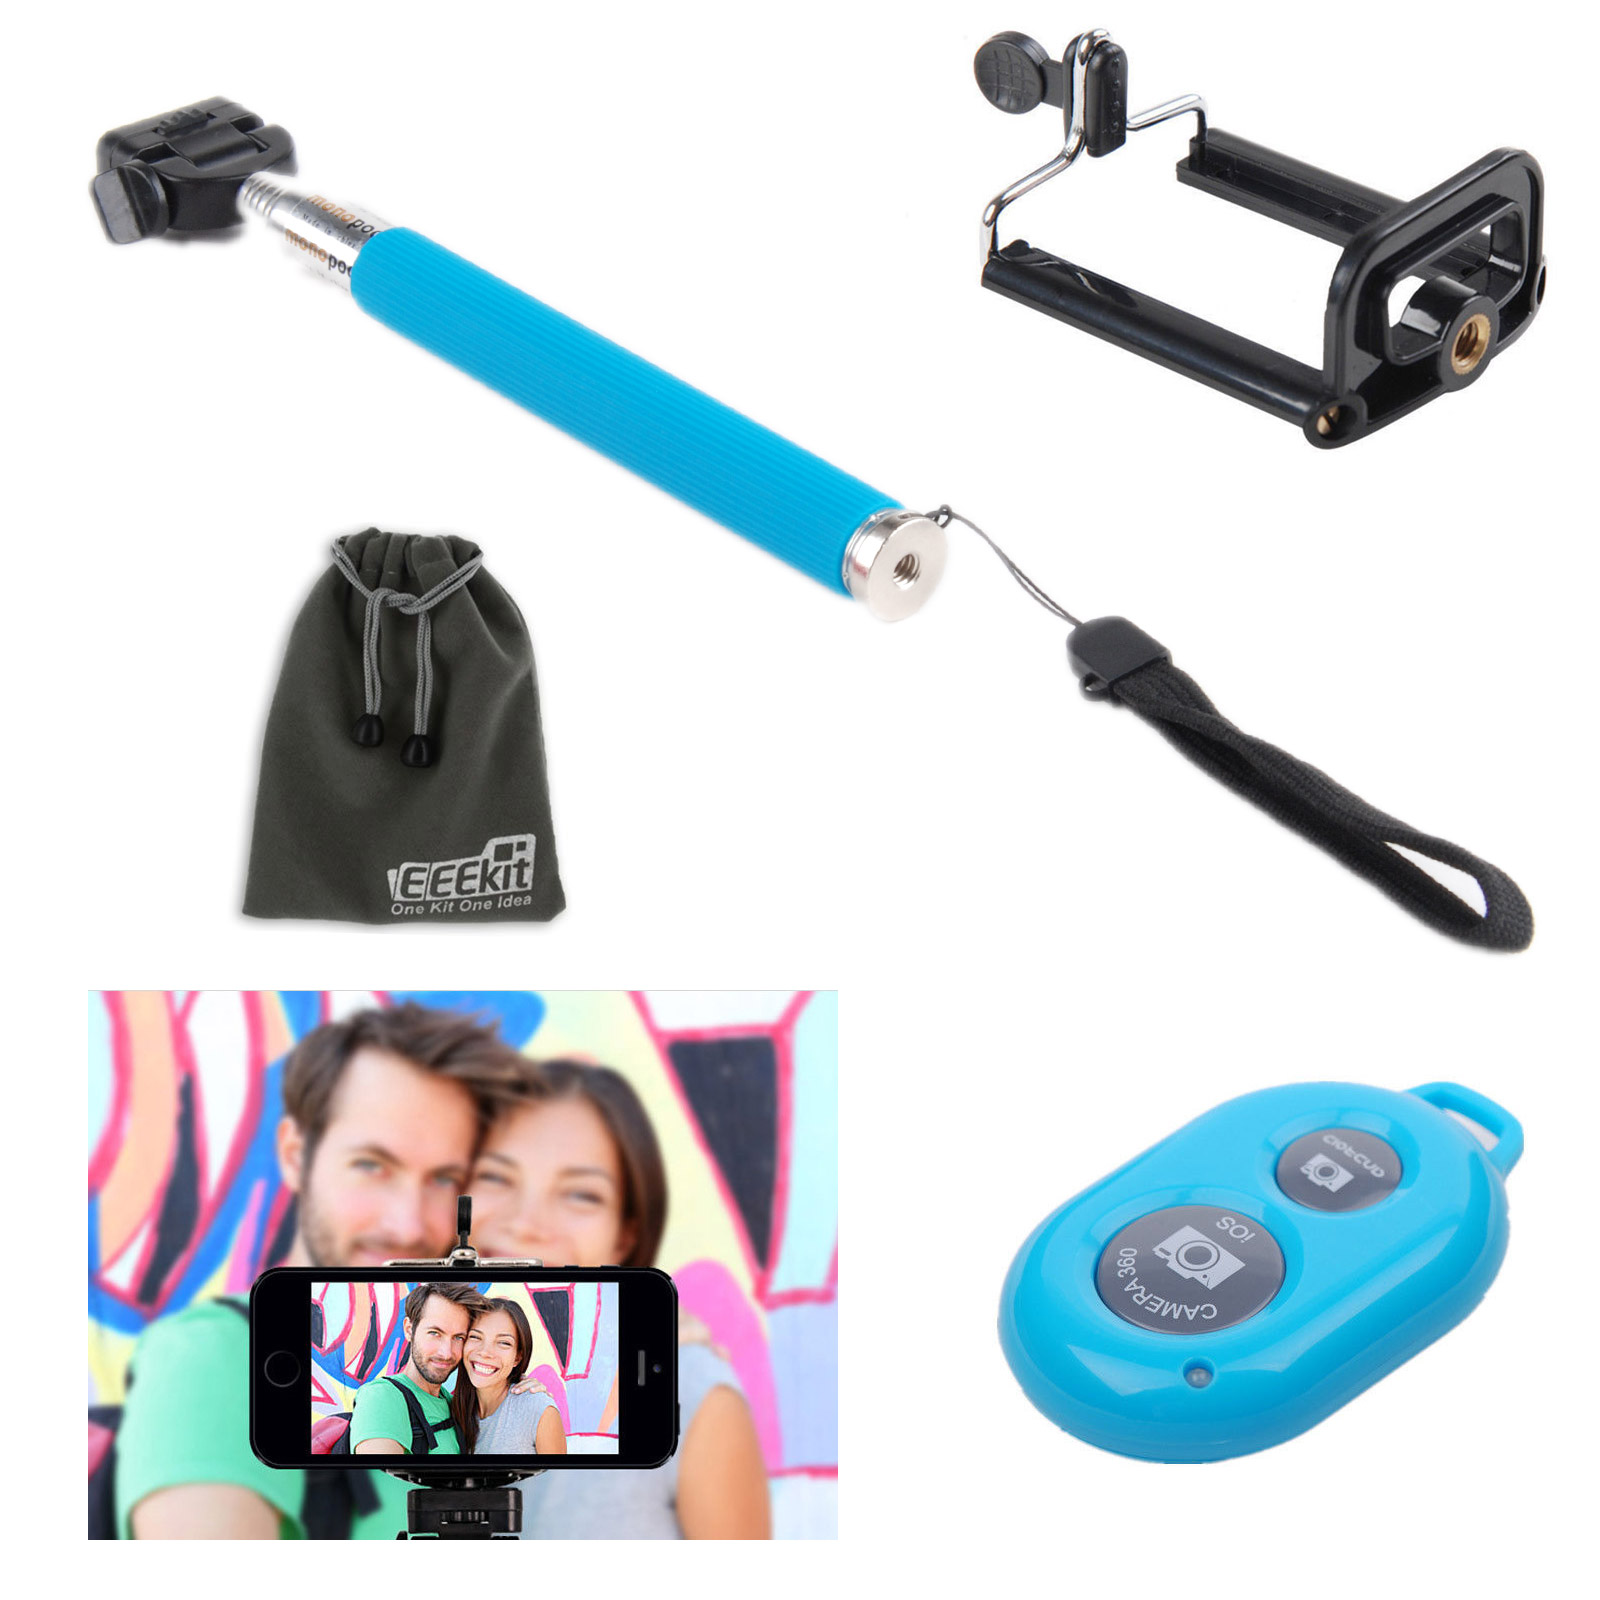 EEEKit Selfie Stick, Remote Shutter for Samsung Galaxy S7 S6 Edge (Plus) Note 5 4 3 iPhone 7 6 6S Plus 5S 5C SE